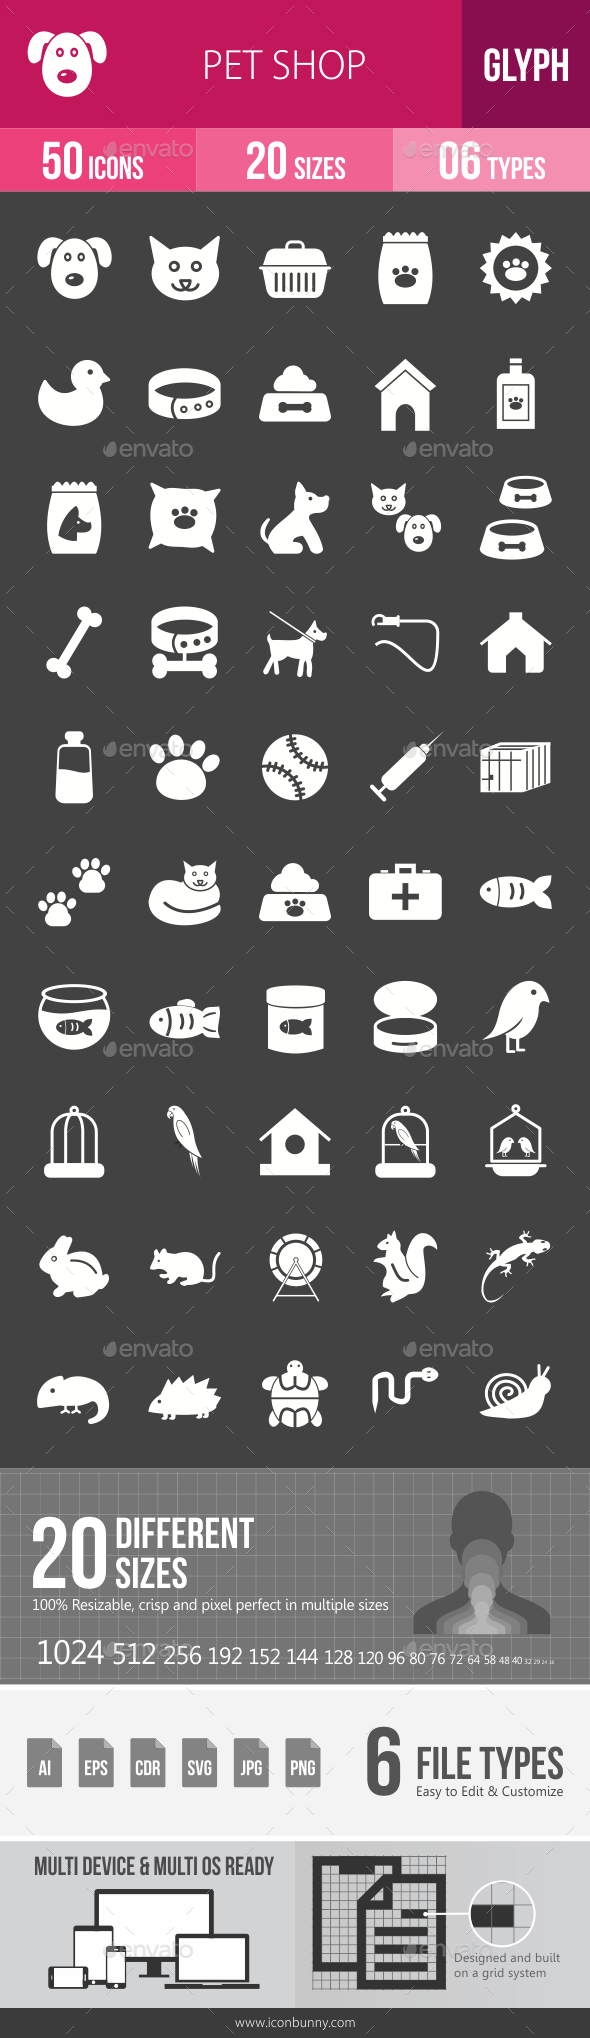 Pet Shop Glyph Inverted Icons - Icons